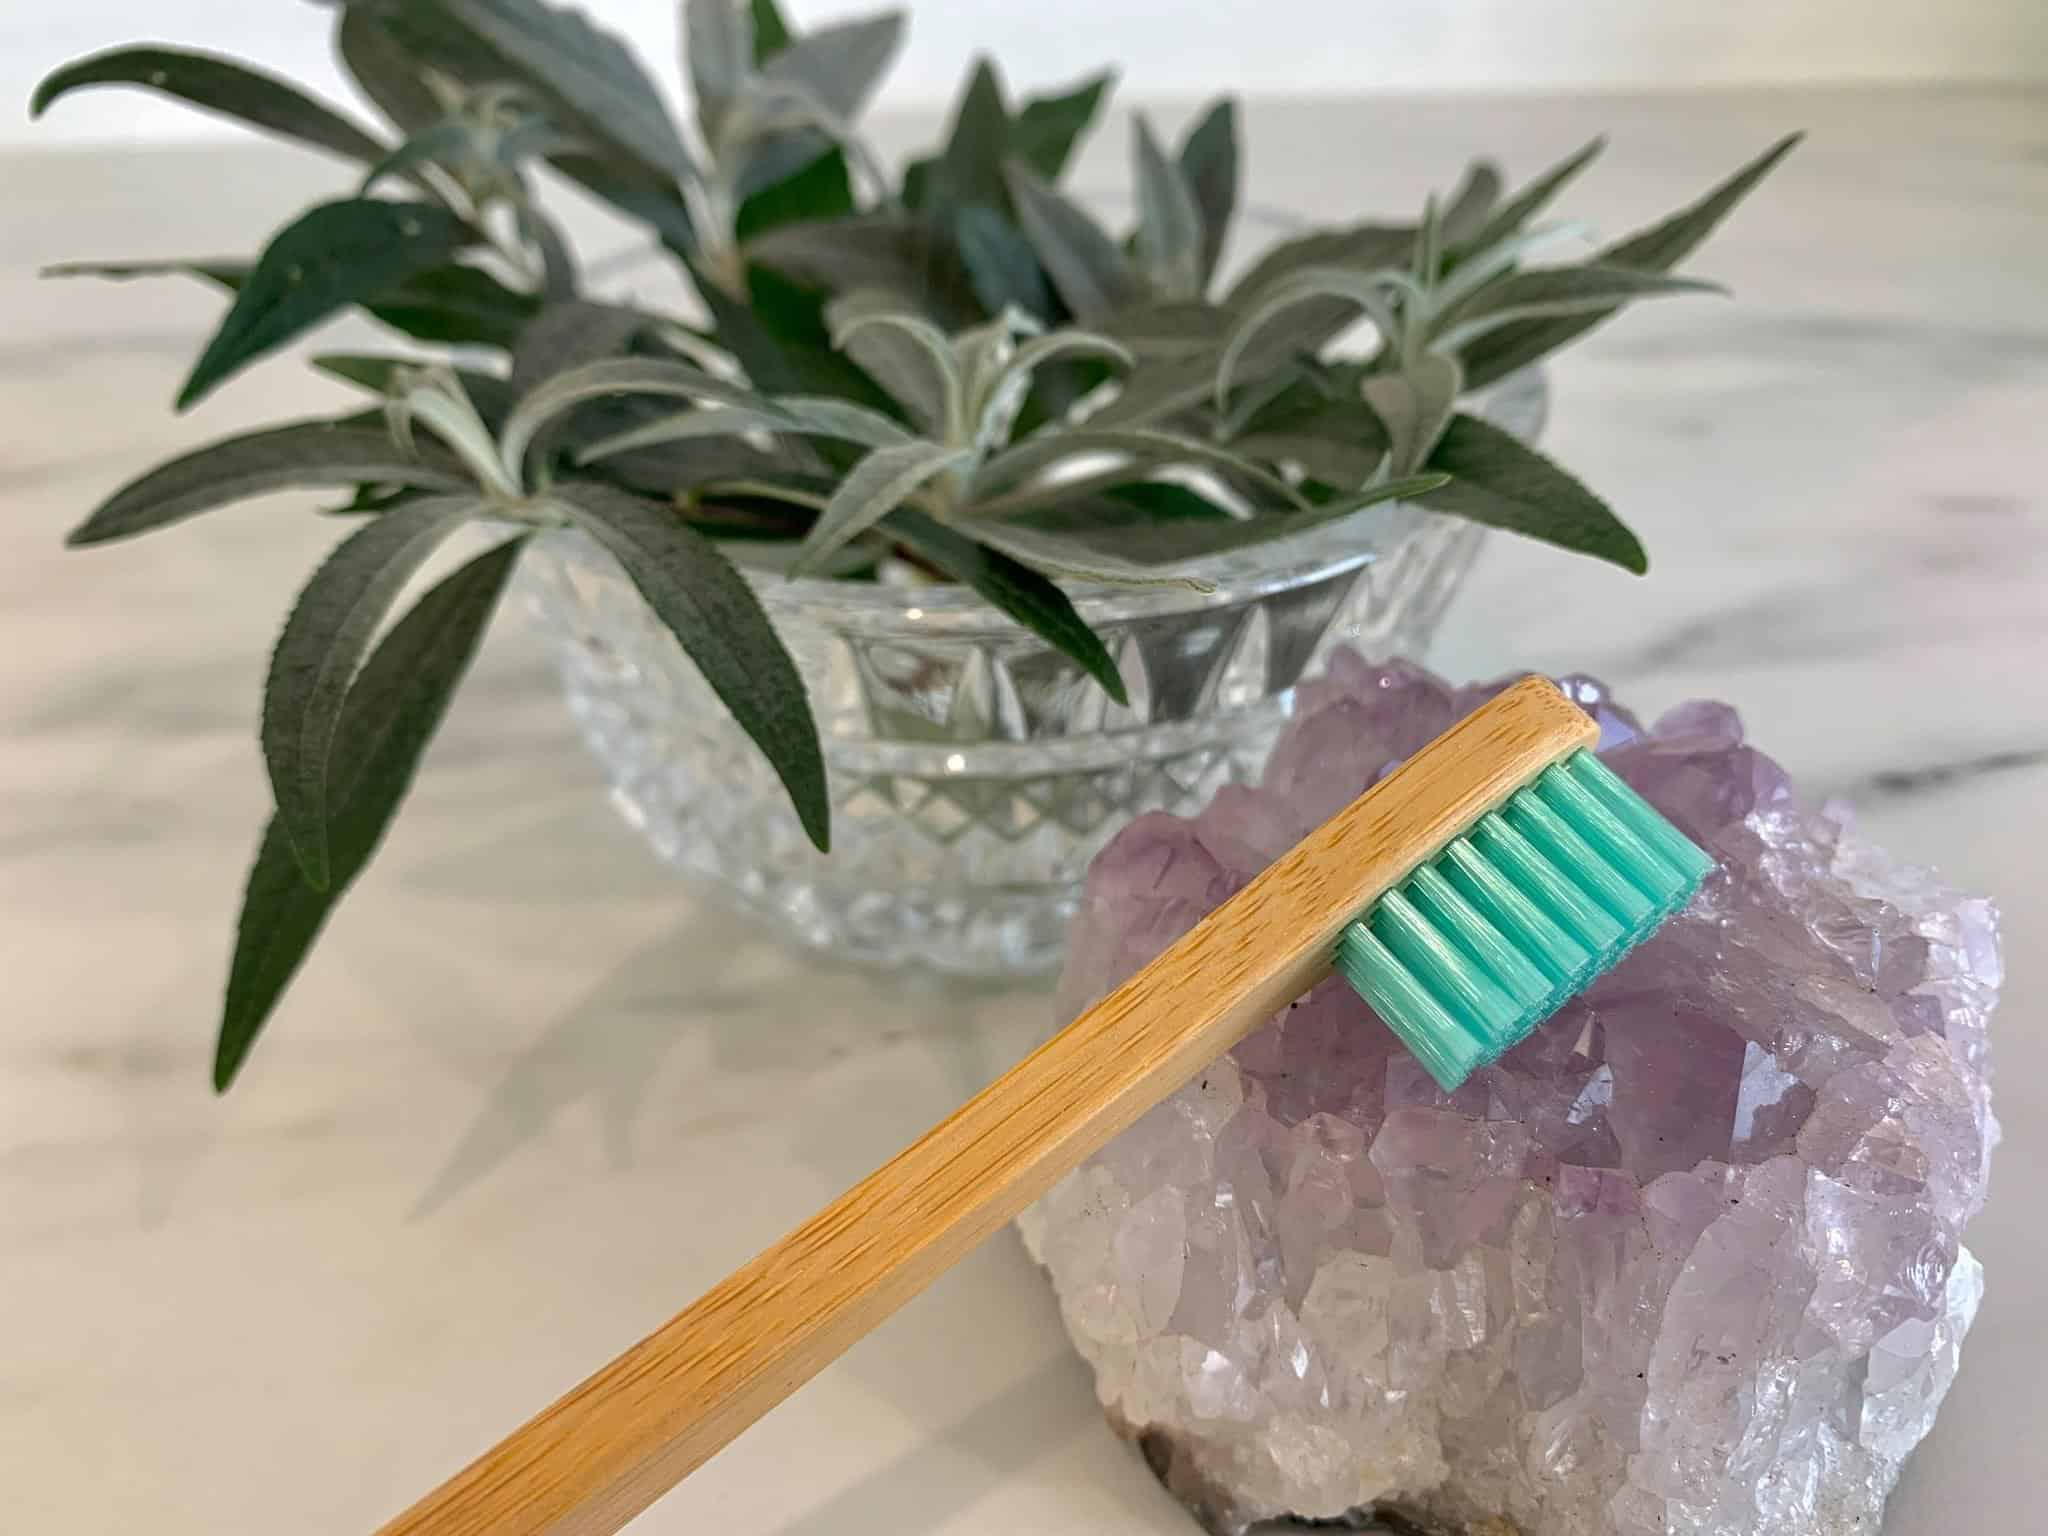 toothbrush and flowers